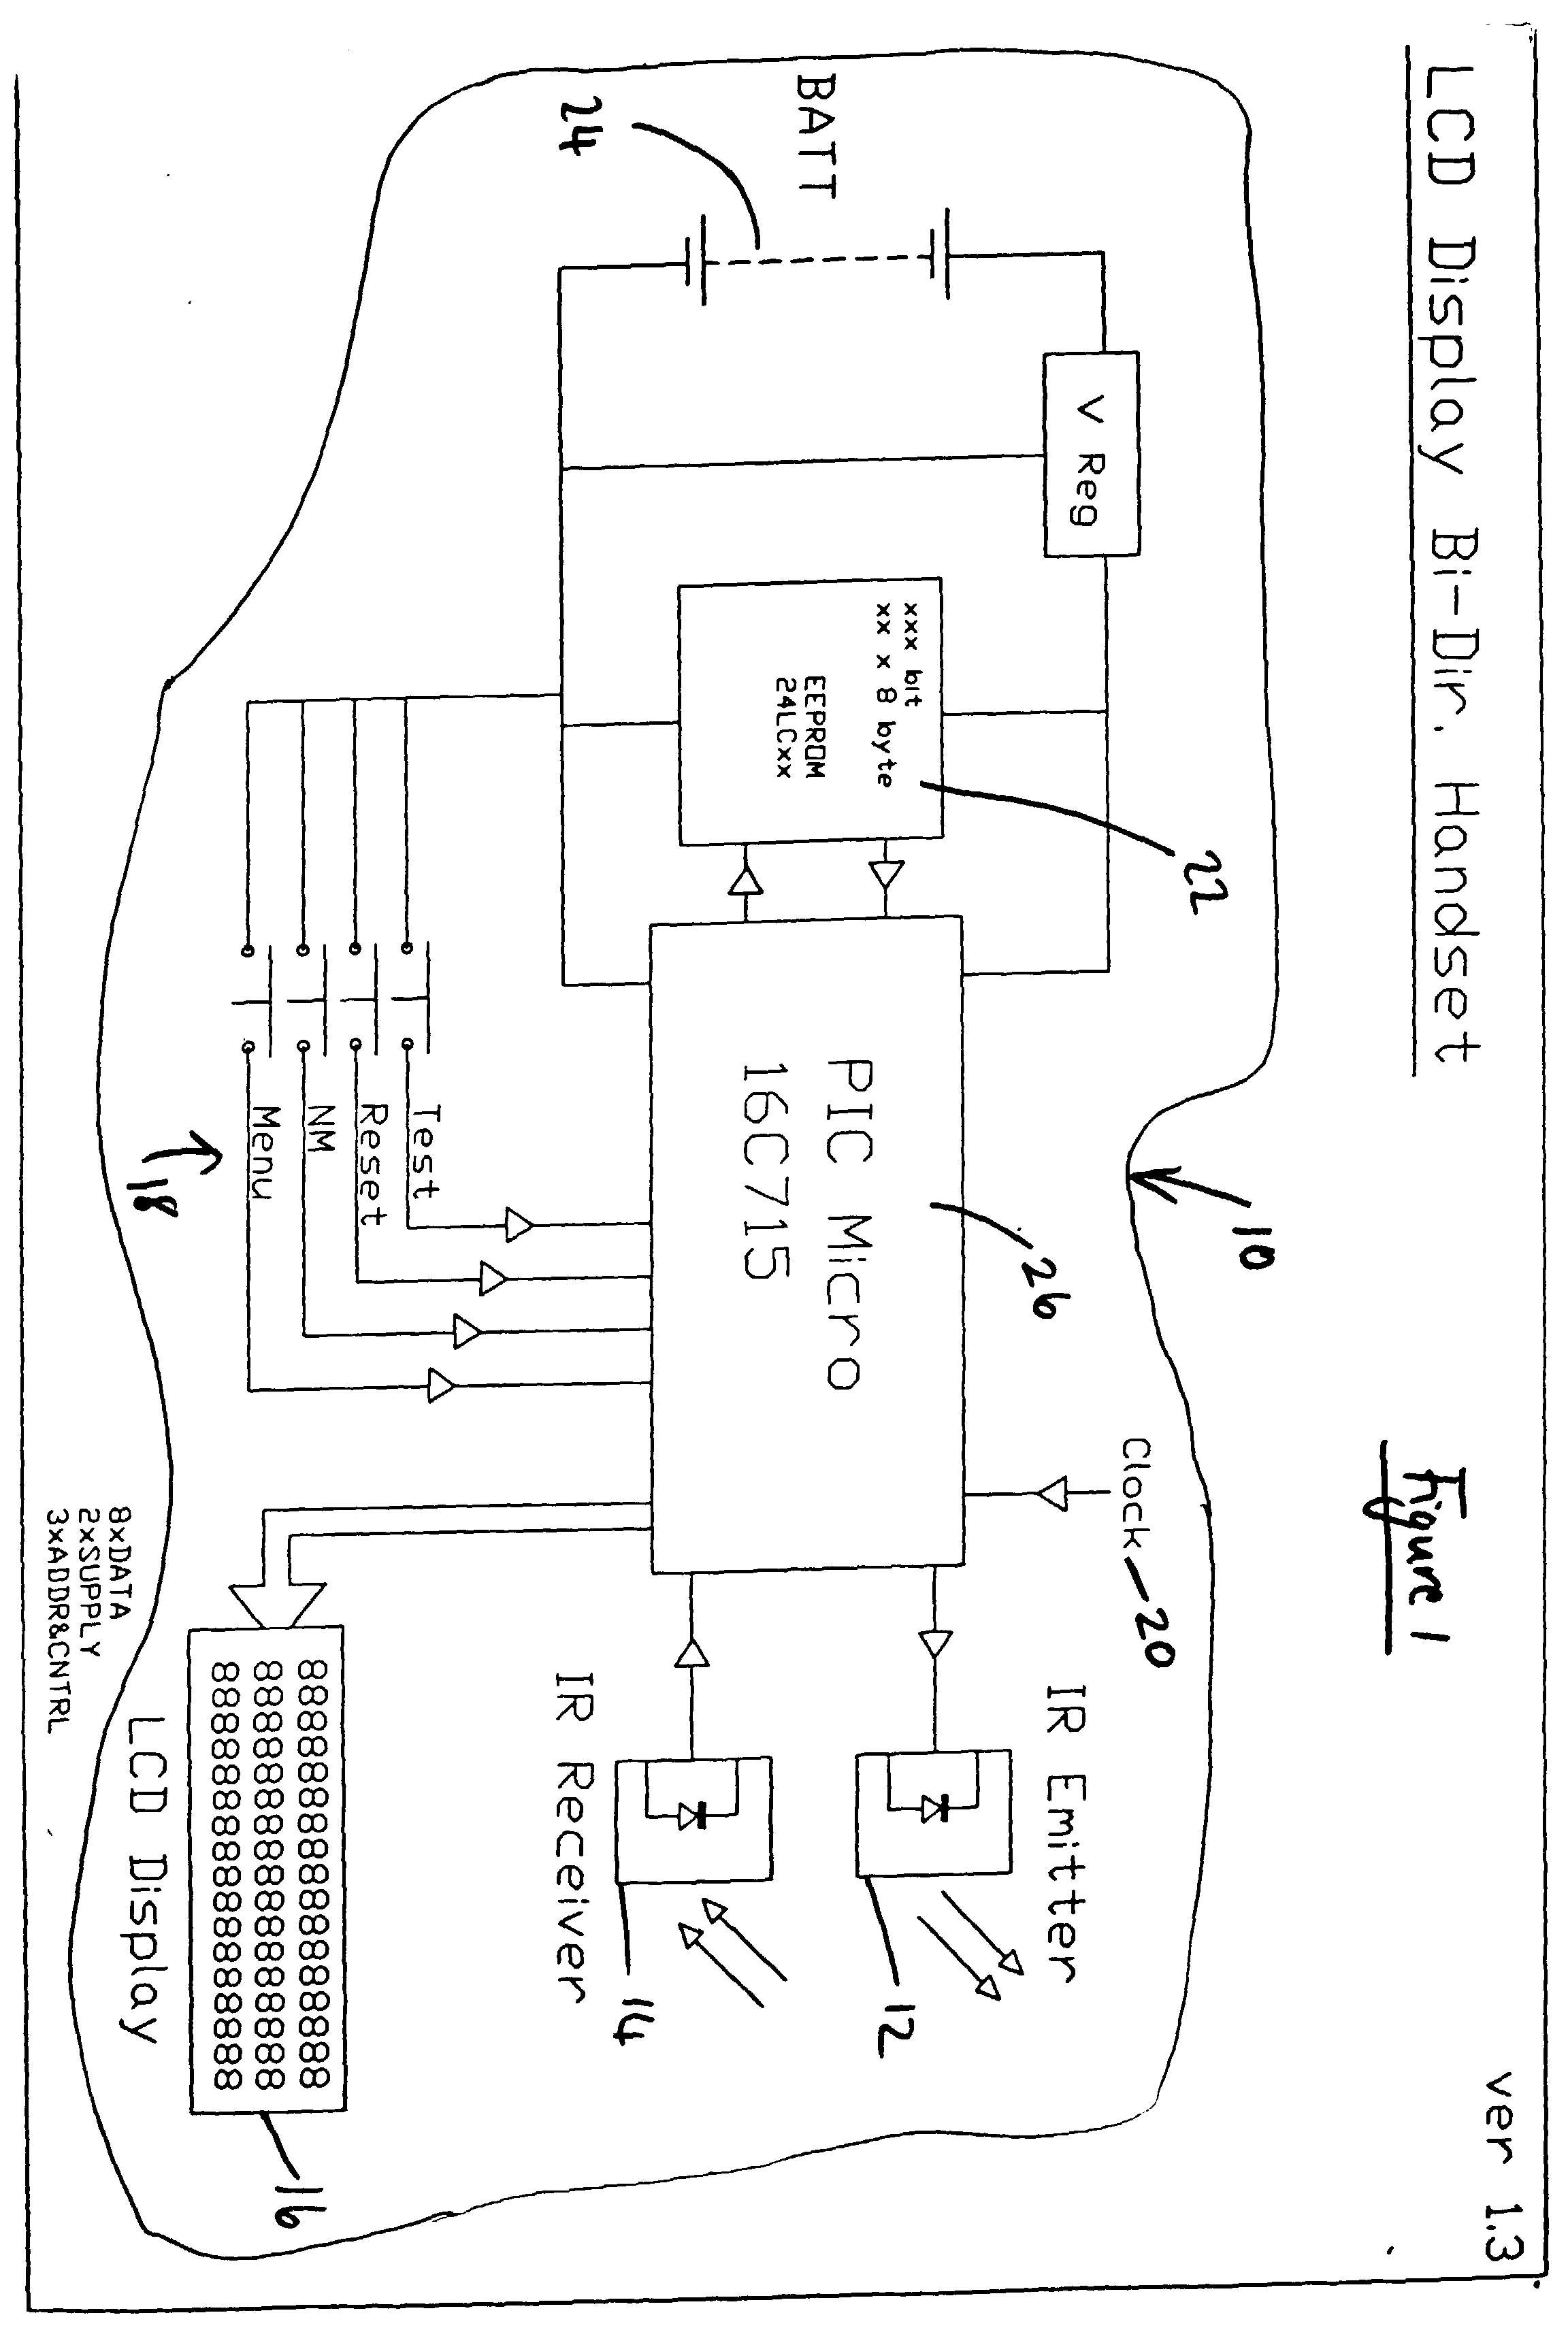 00160001 patent ep1035628a1 improvements relating to emergency lighting emergency light test switch wiring diagram at mifinder.co